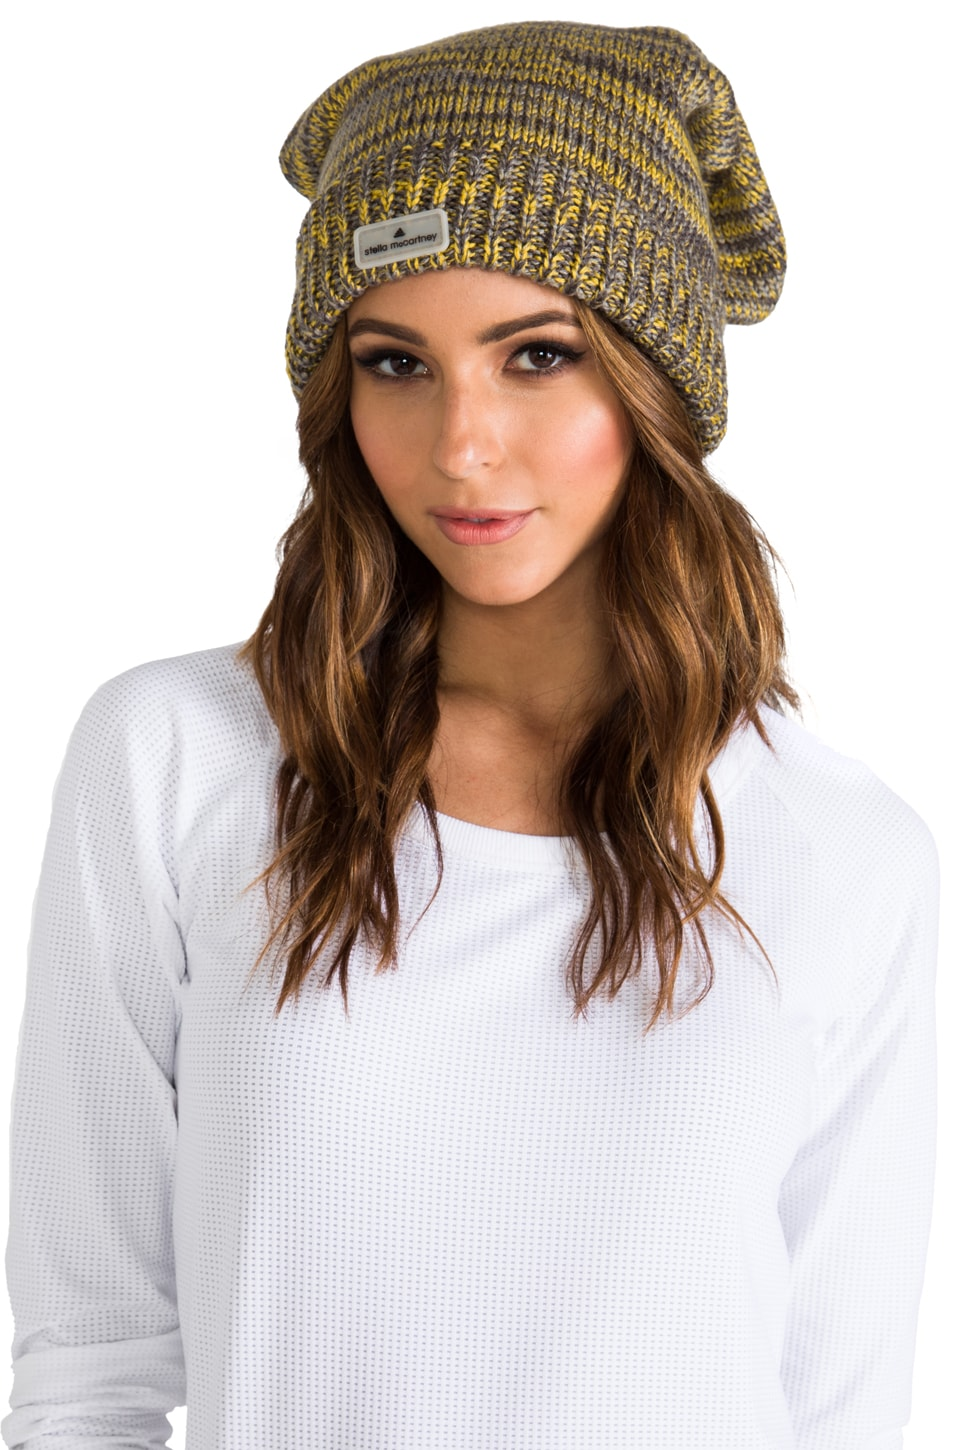 adidas by Stella McCartney Ski Hat in Sharp Yellow/Sharp Grey/Grey Rock